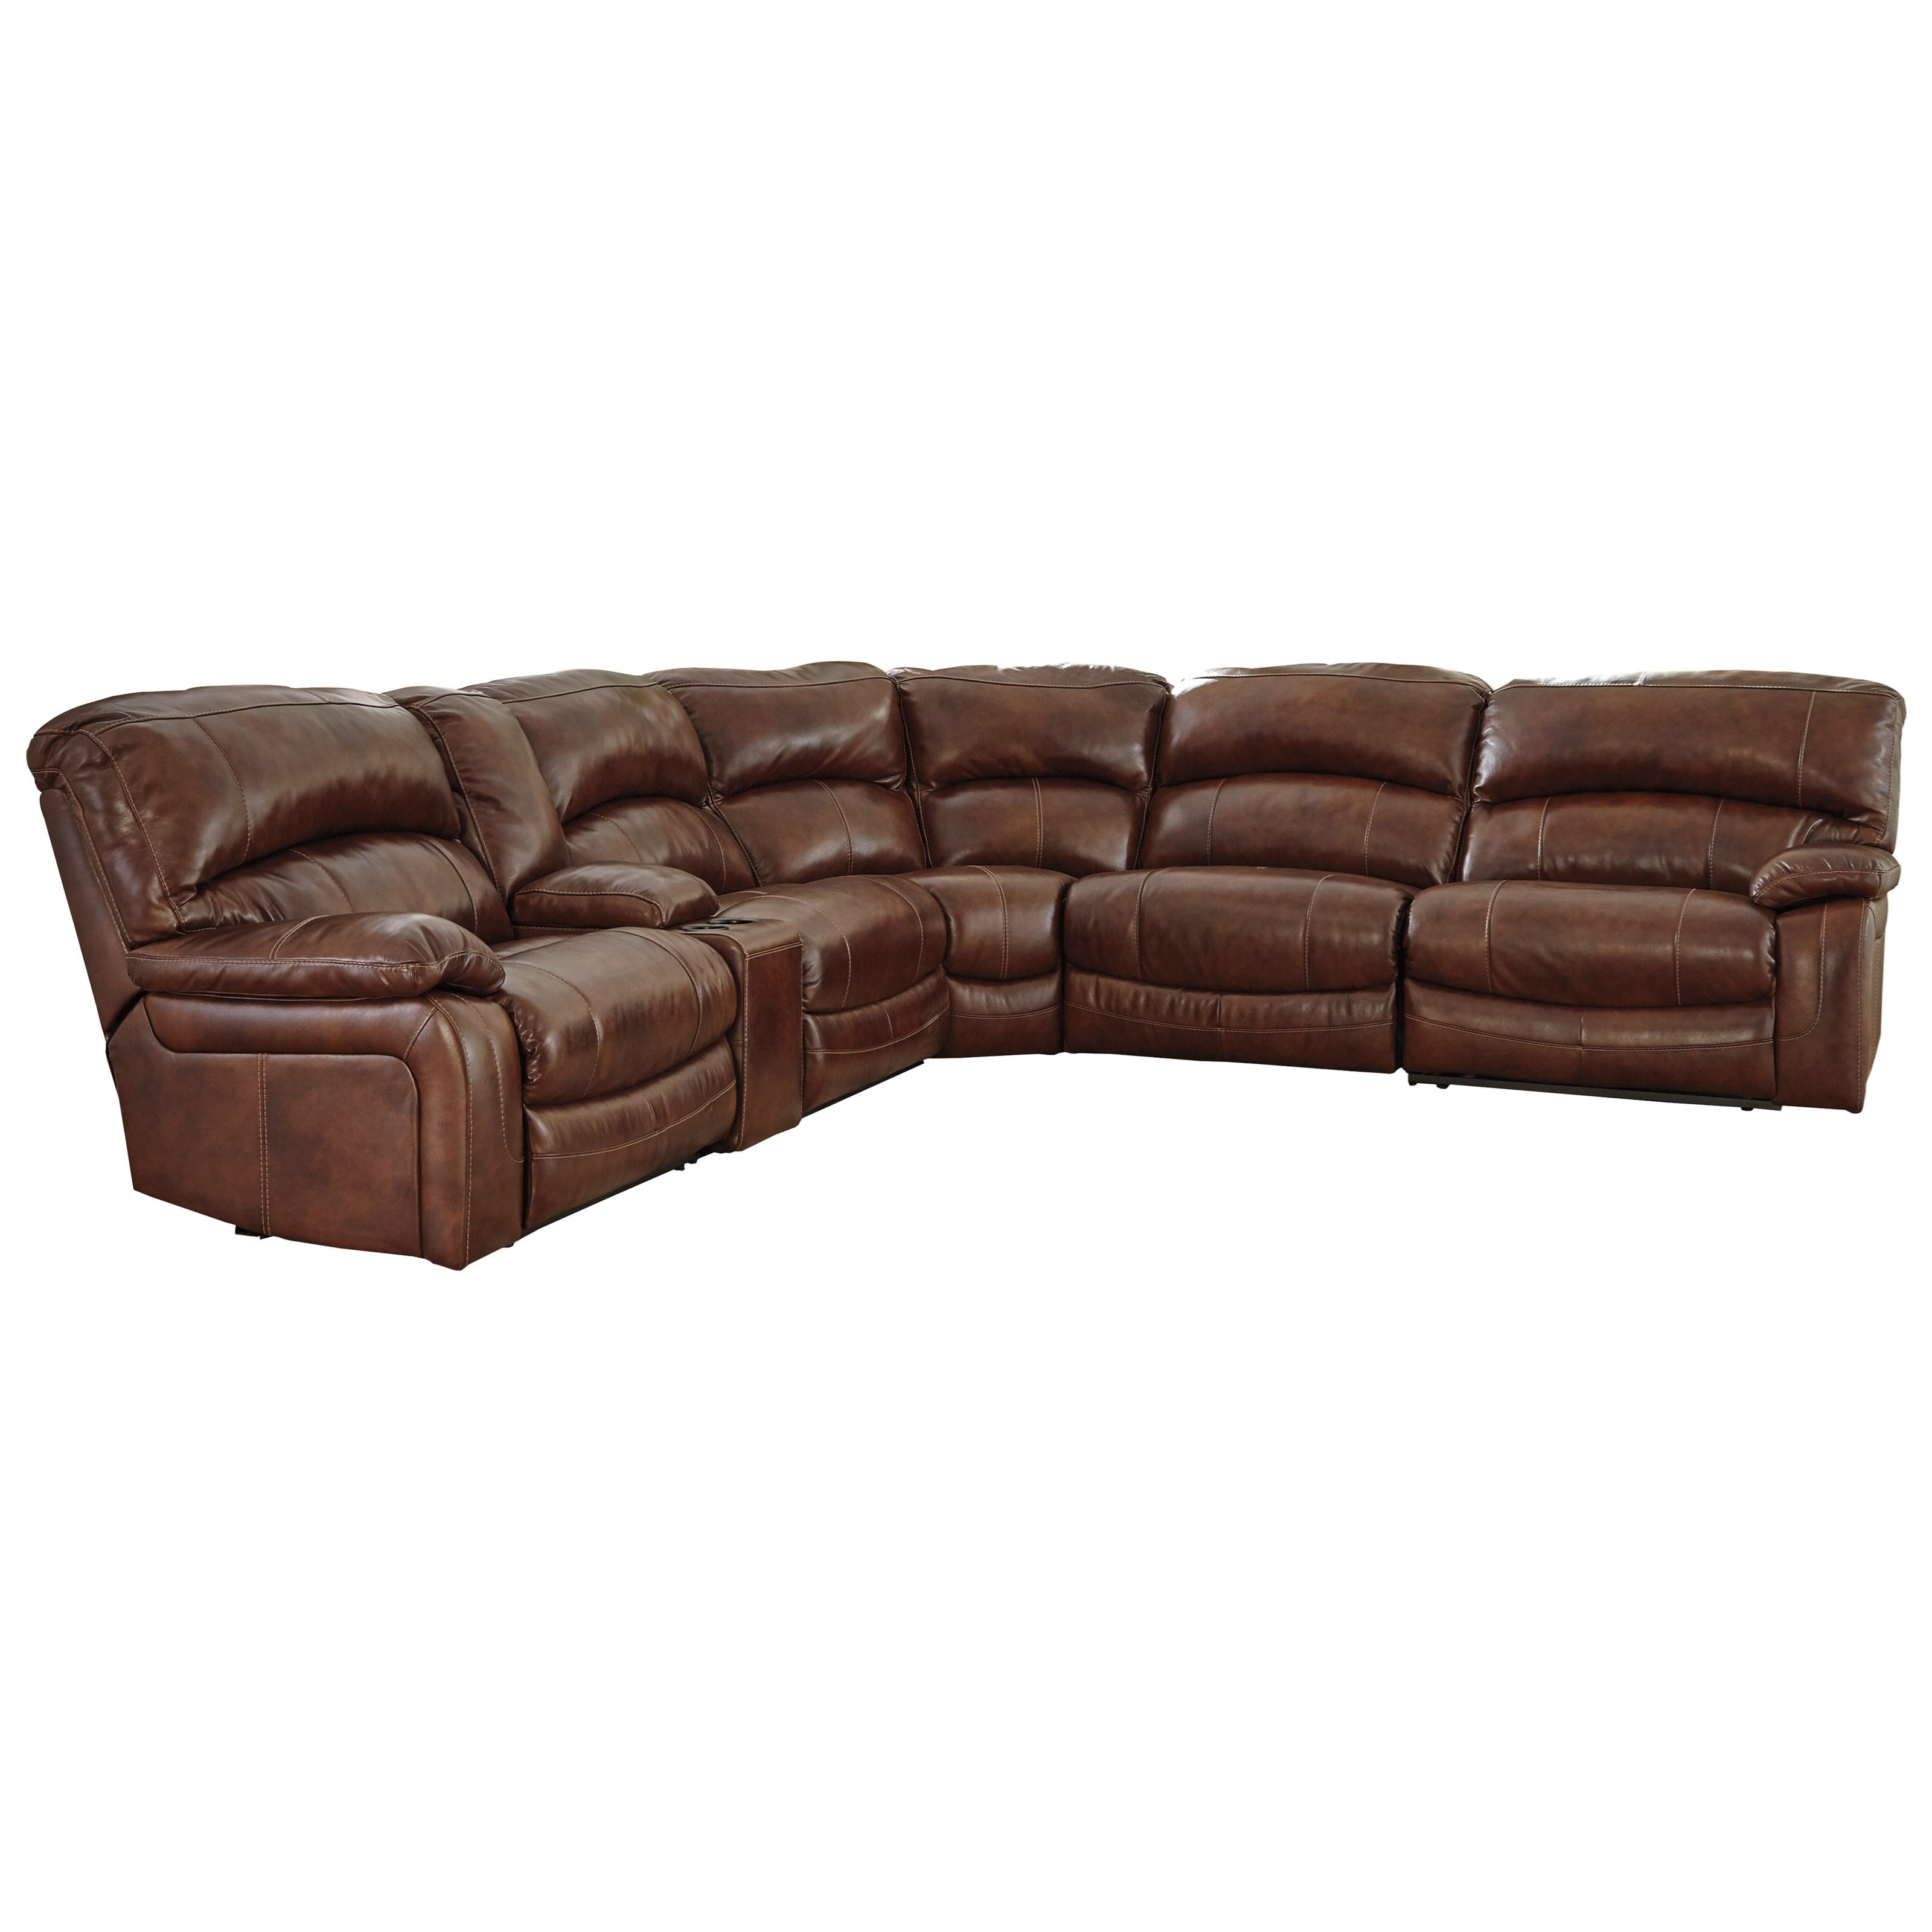 Signature Design by Ashley Damacio - Harness Power Reclining Sectional with Console - Item Number: U9821058+57+19+77+46+62